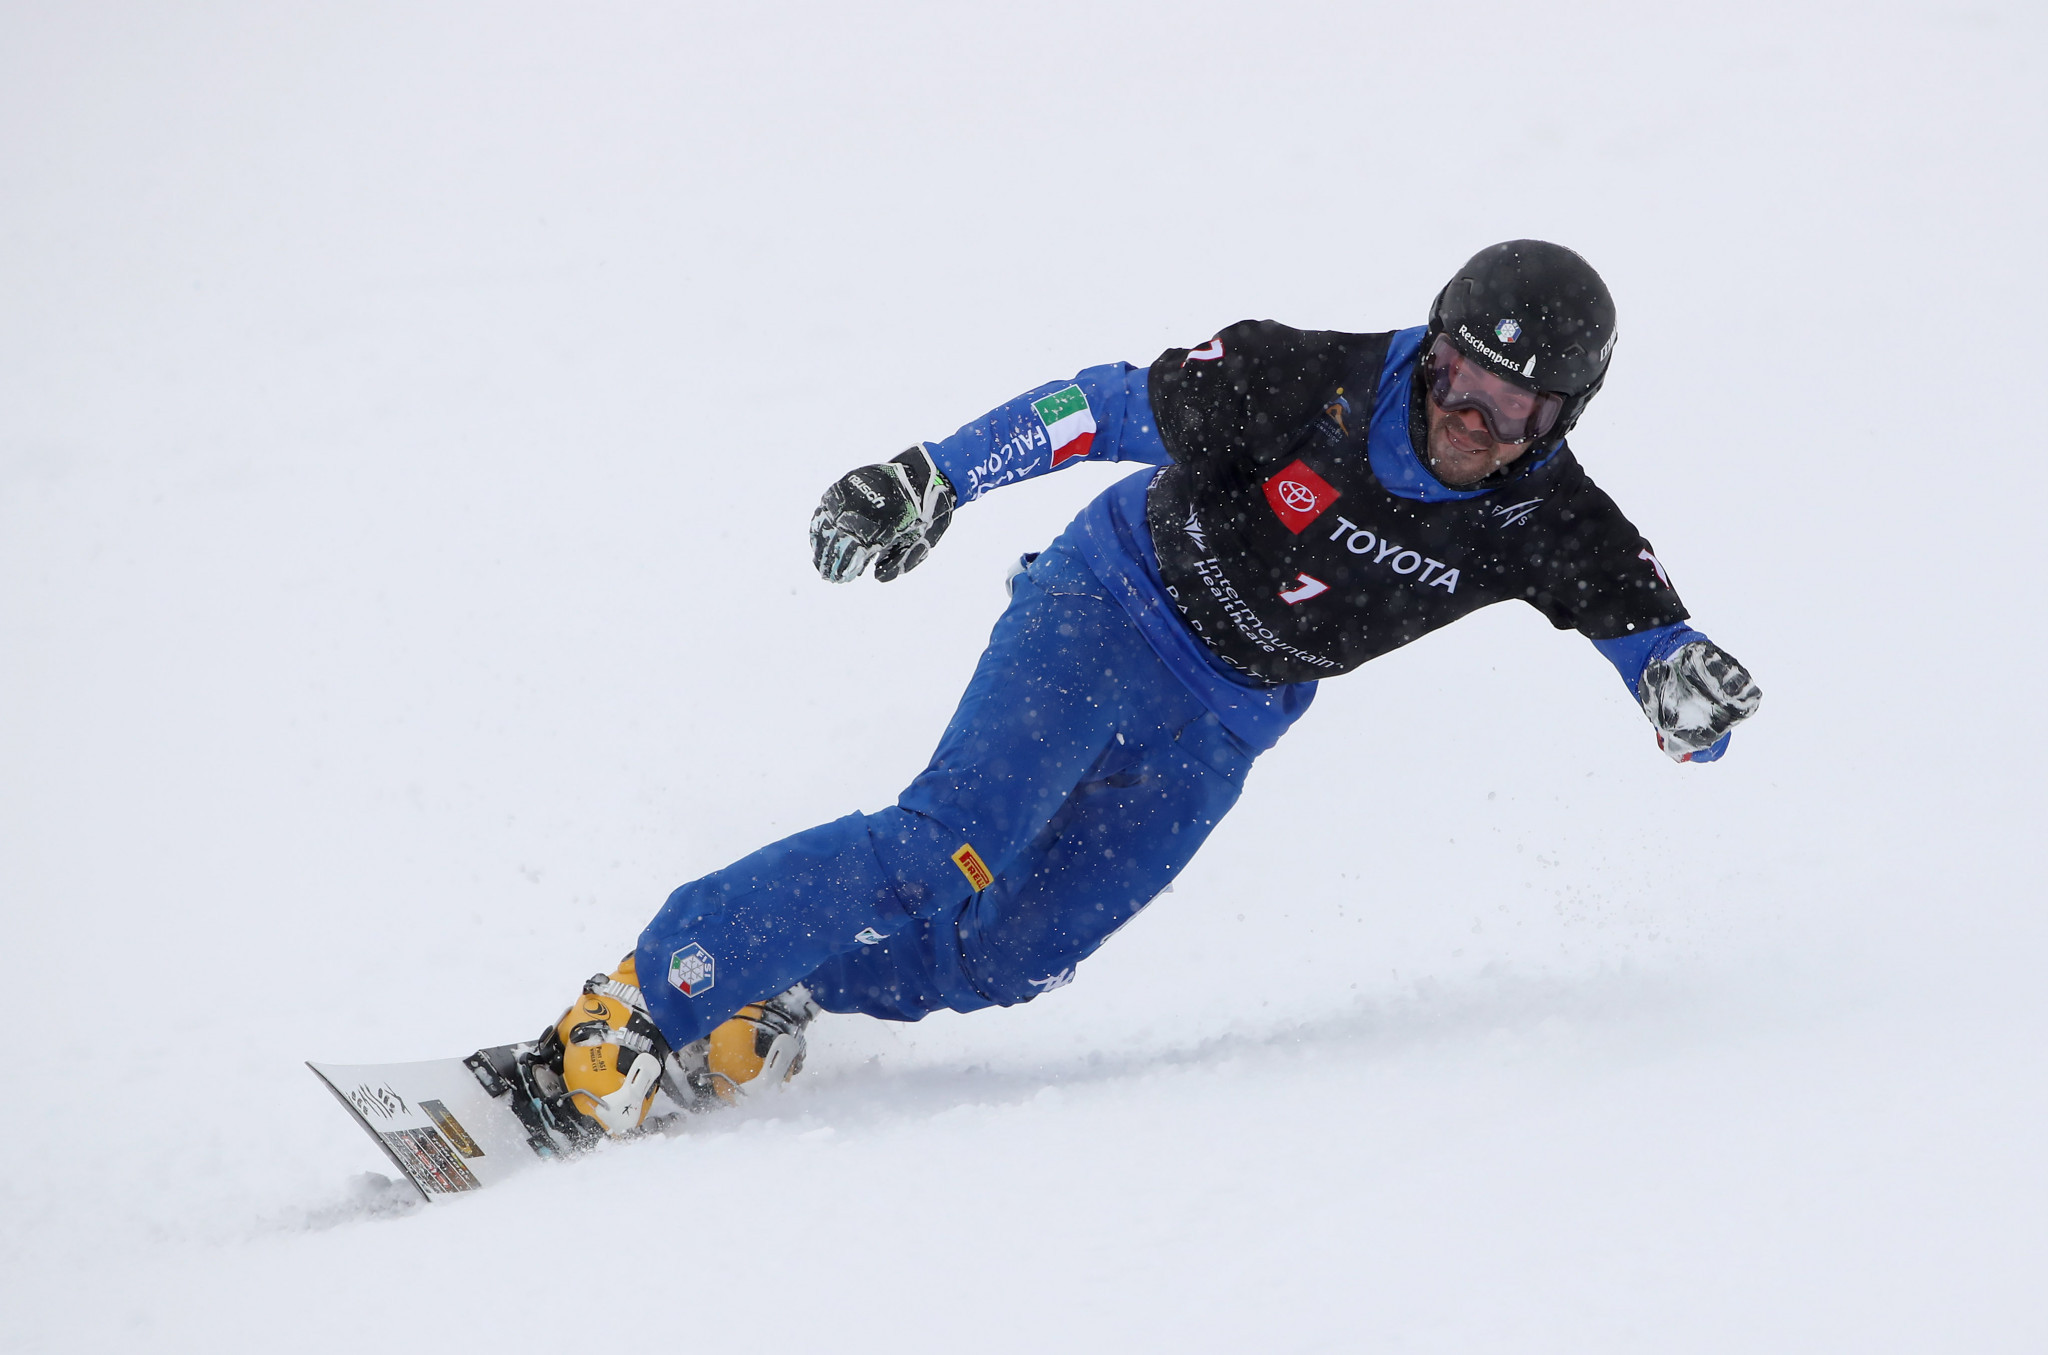 Italy's Coratti repeats win in men's parallel giant slalom at FIS Snowboard World Cup in Rogla